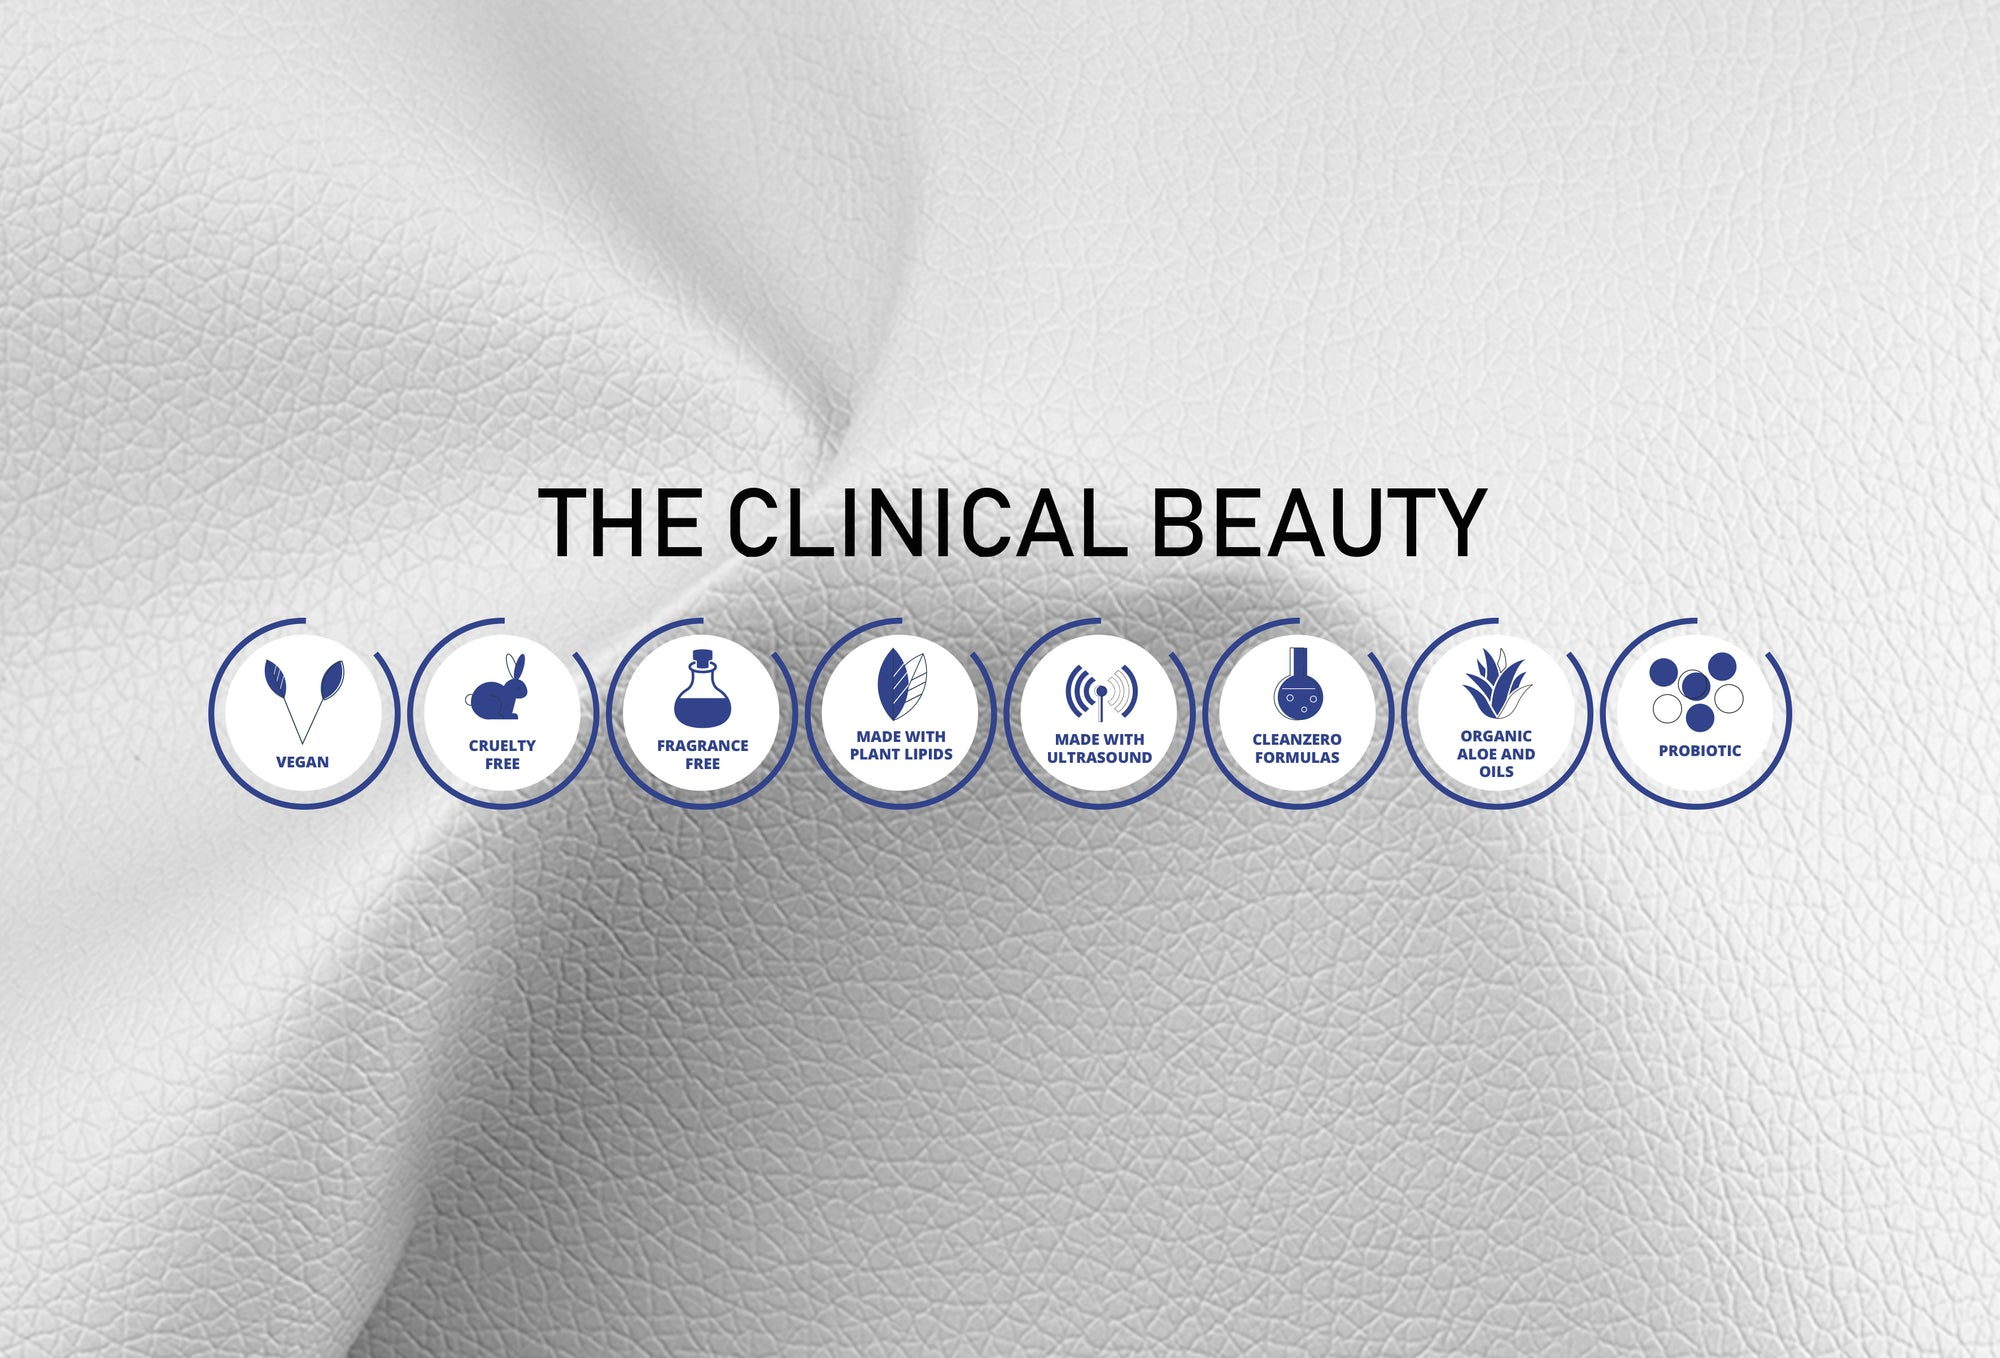 THE CLINICAL BEAUTY